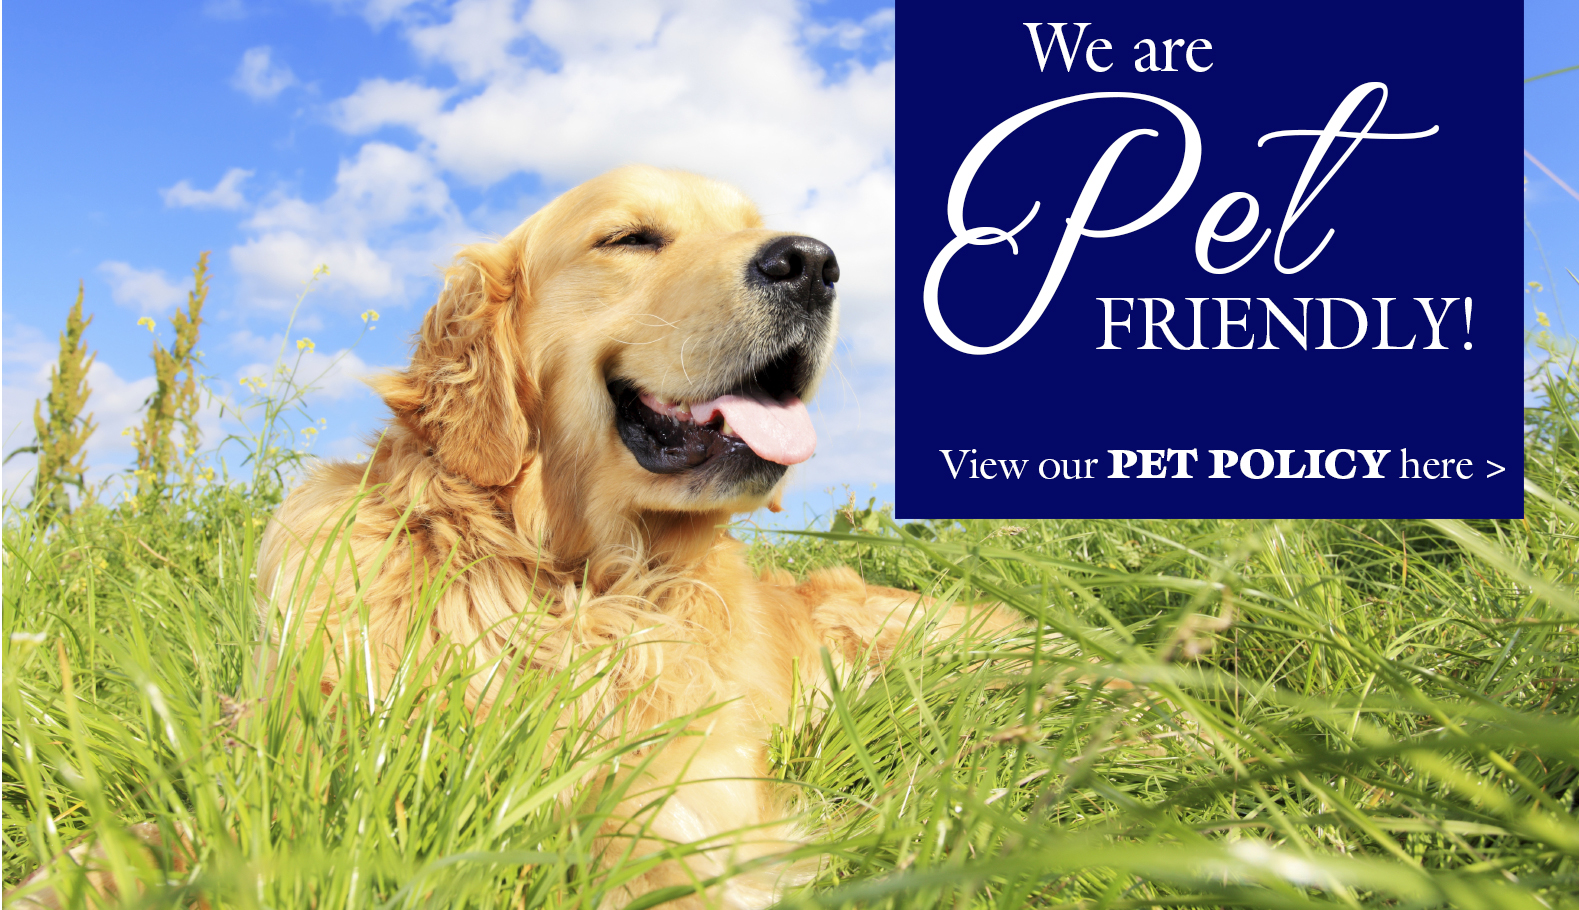 Sunny Brook Cottages is Pet Friendly!